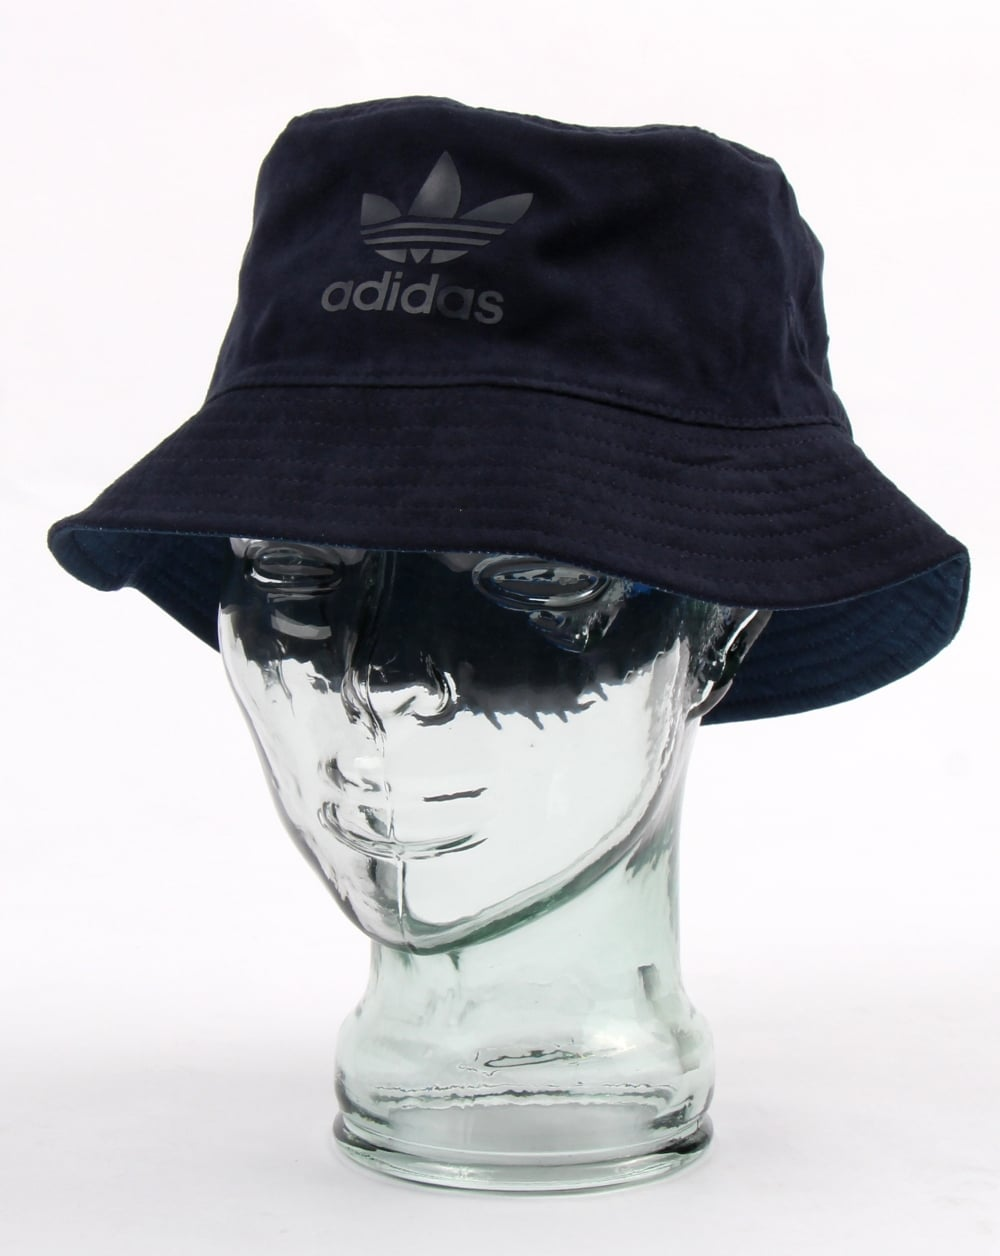 adidas Originals Adidas Originals I Bucket Hat Navy ed38db35511